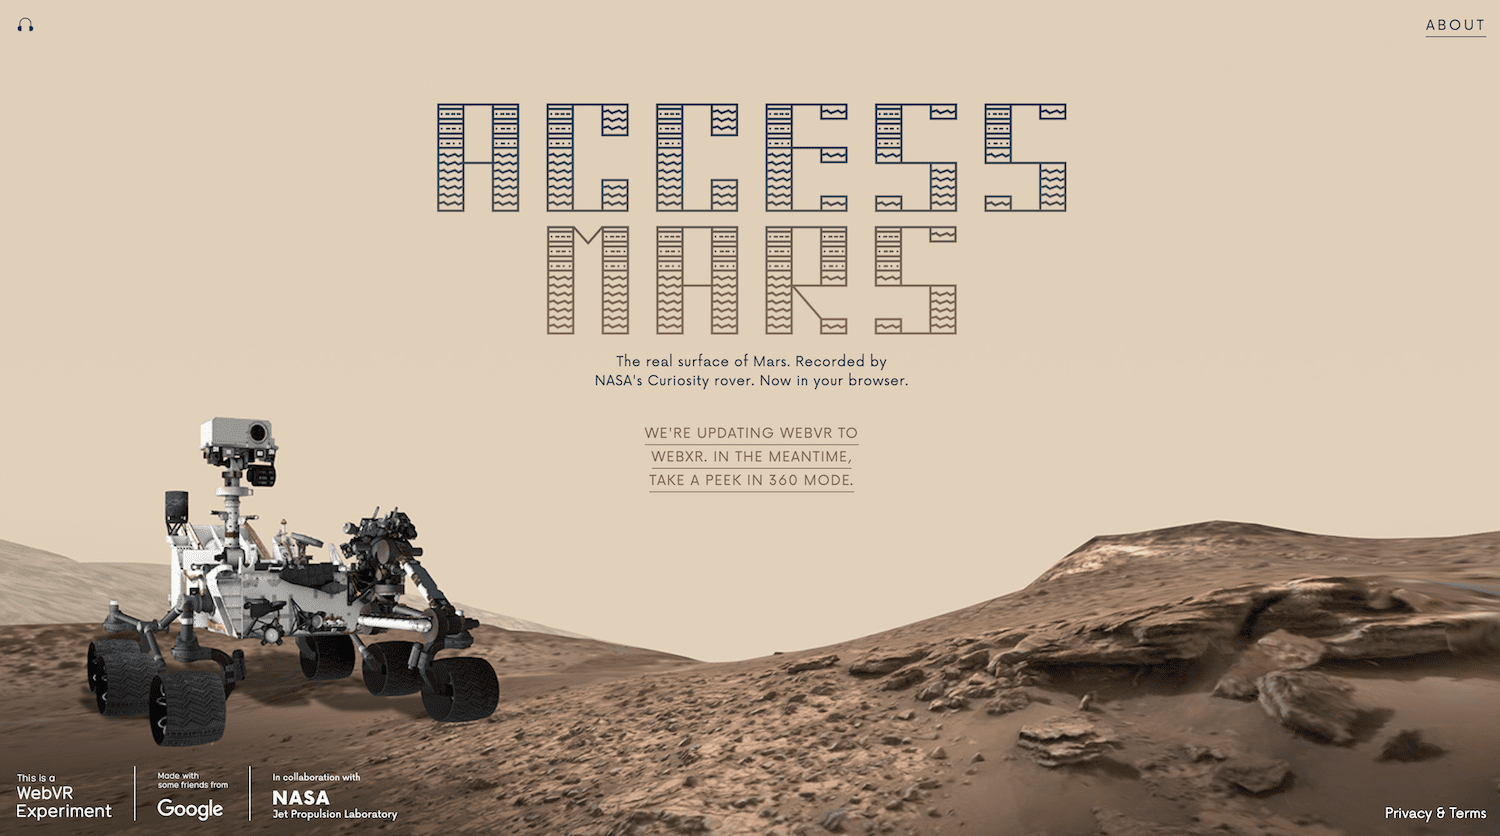 Drive a rover on mars with NASA